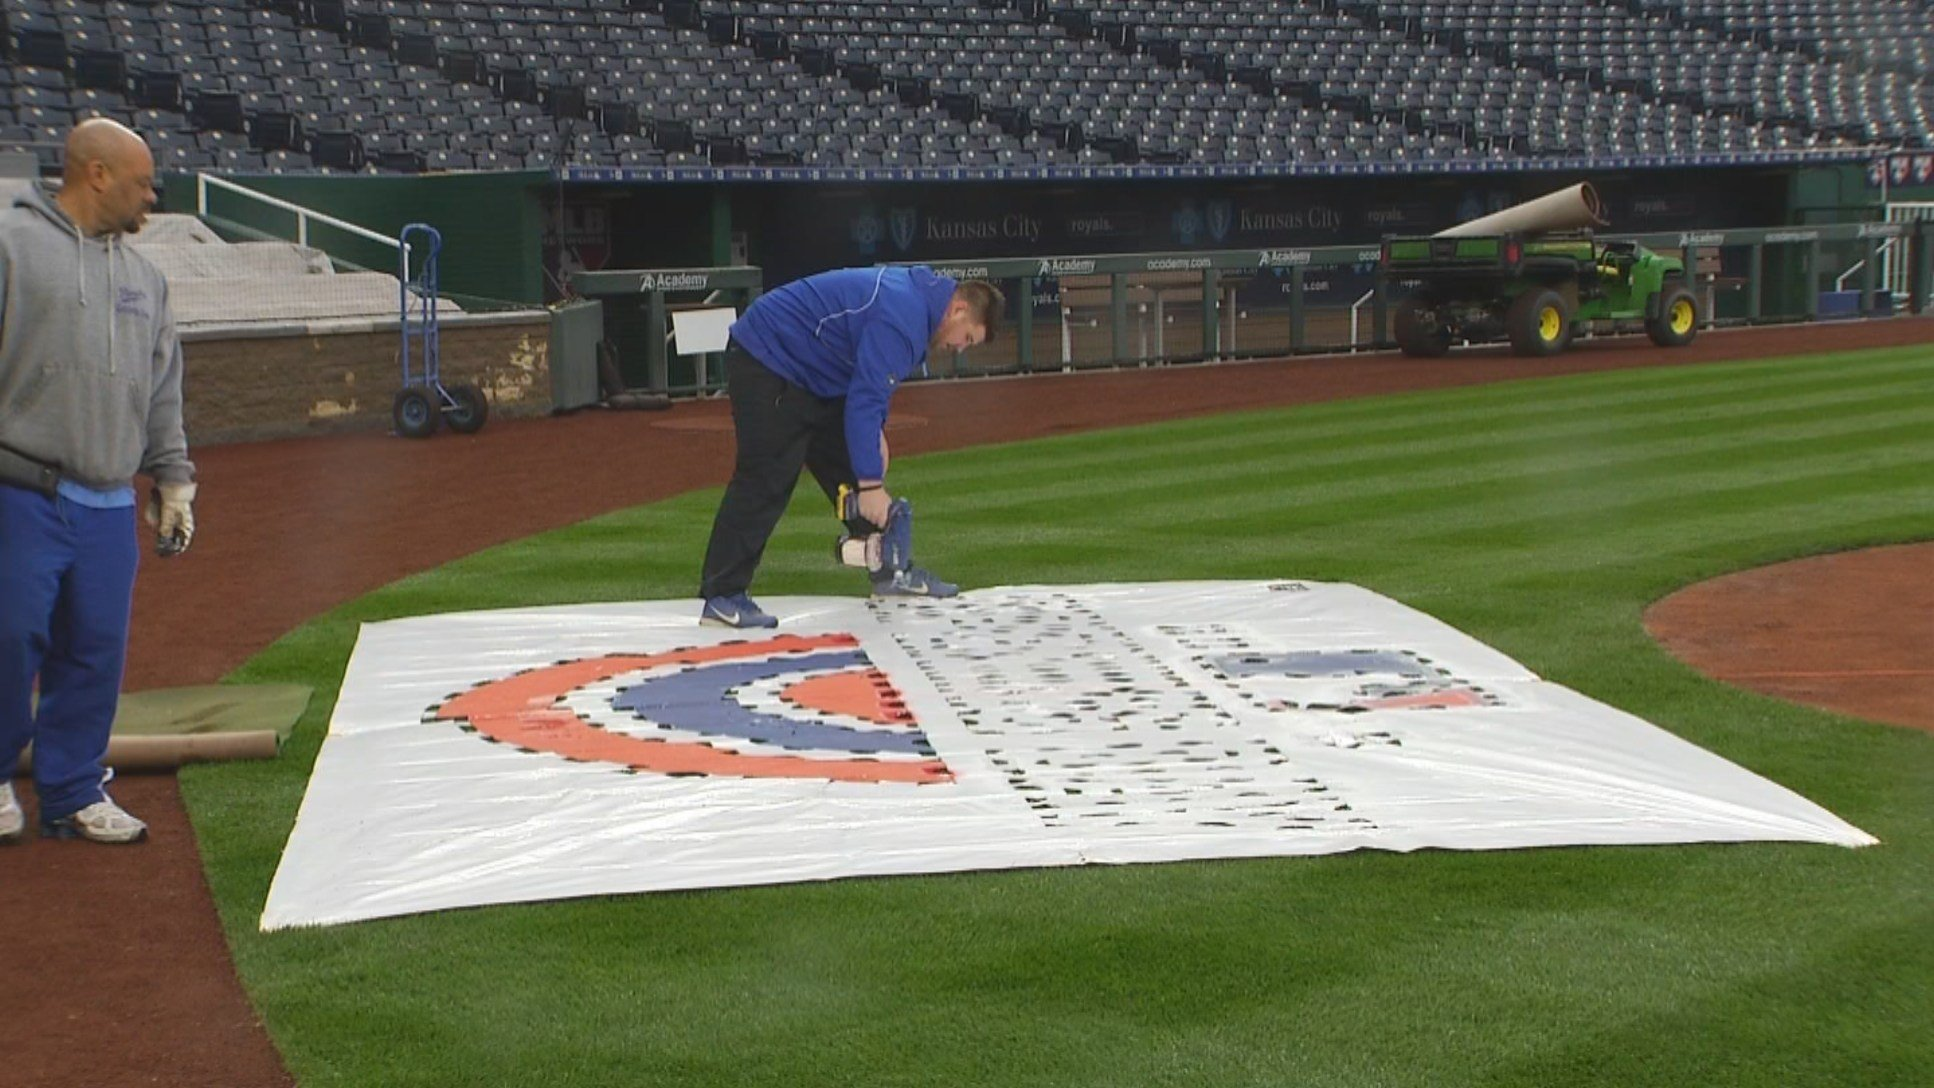 The Royals and White Sox prepare to open a three-game series. (KCTV5)